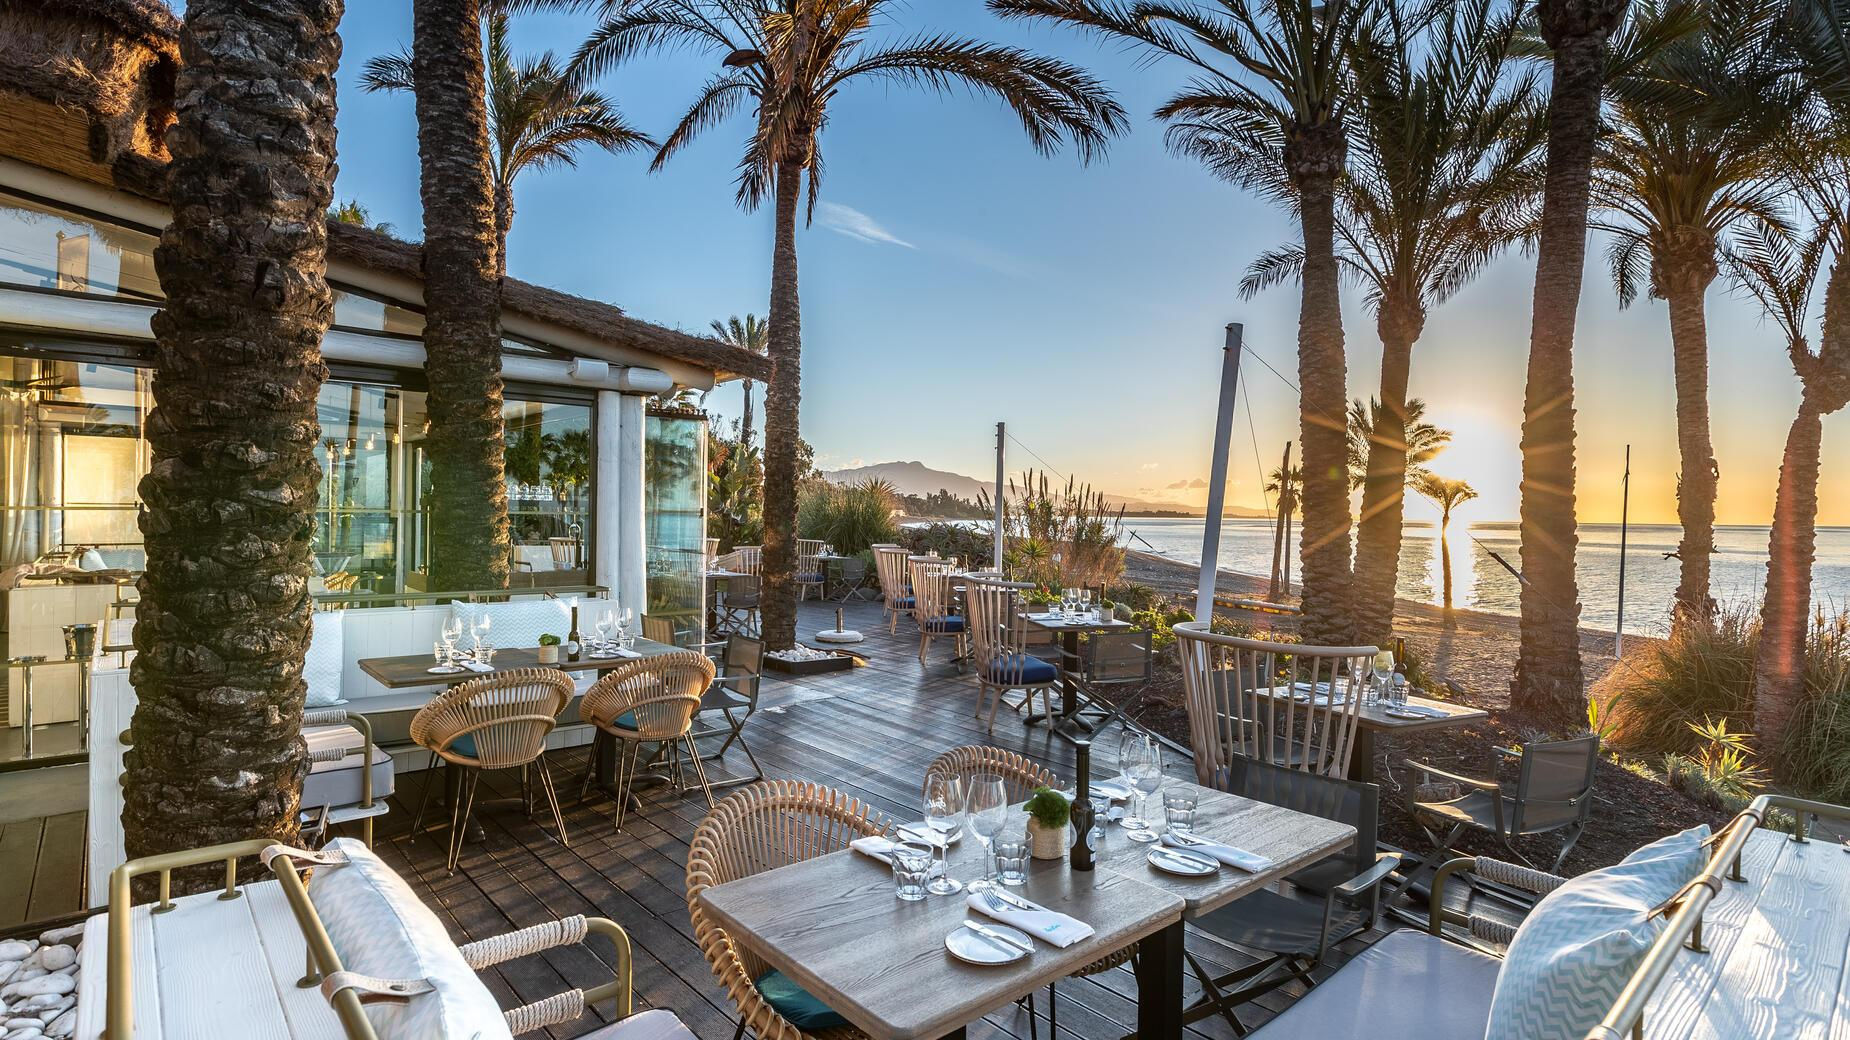 Spíler Beach Club, restaurant on the beach in Marbella, Estepona, Costa del Sol